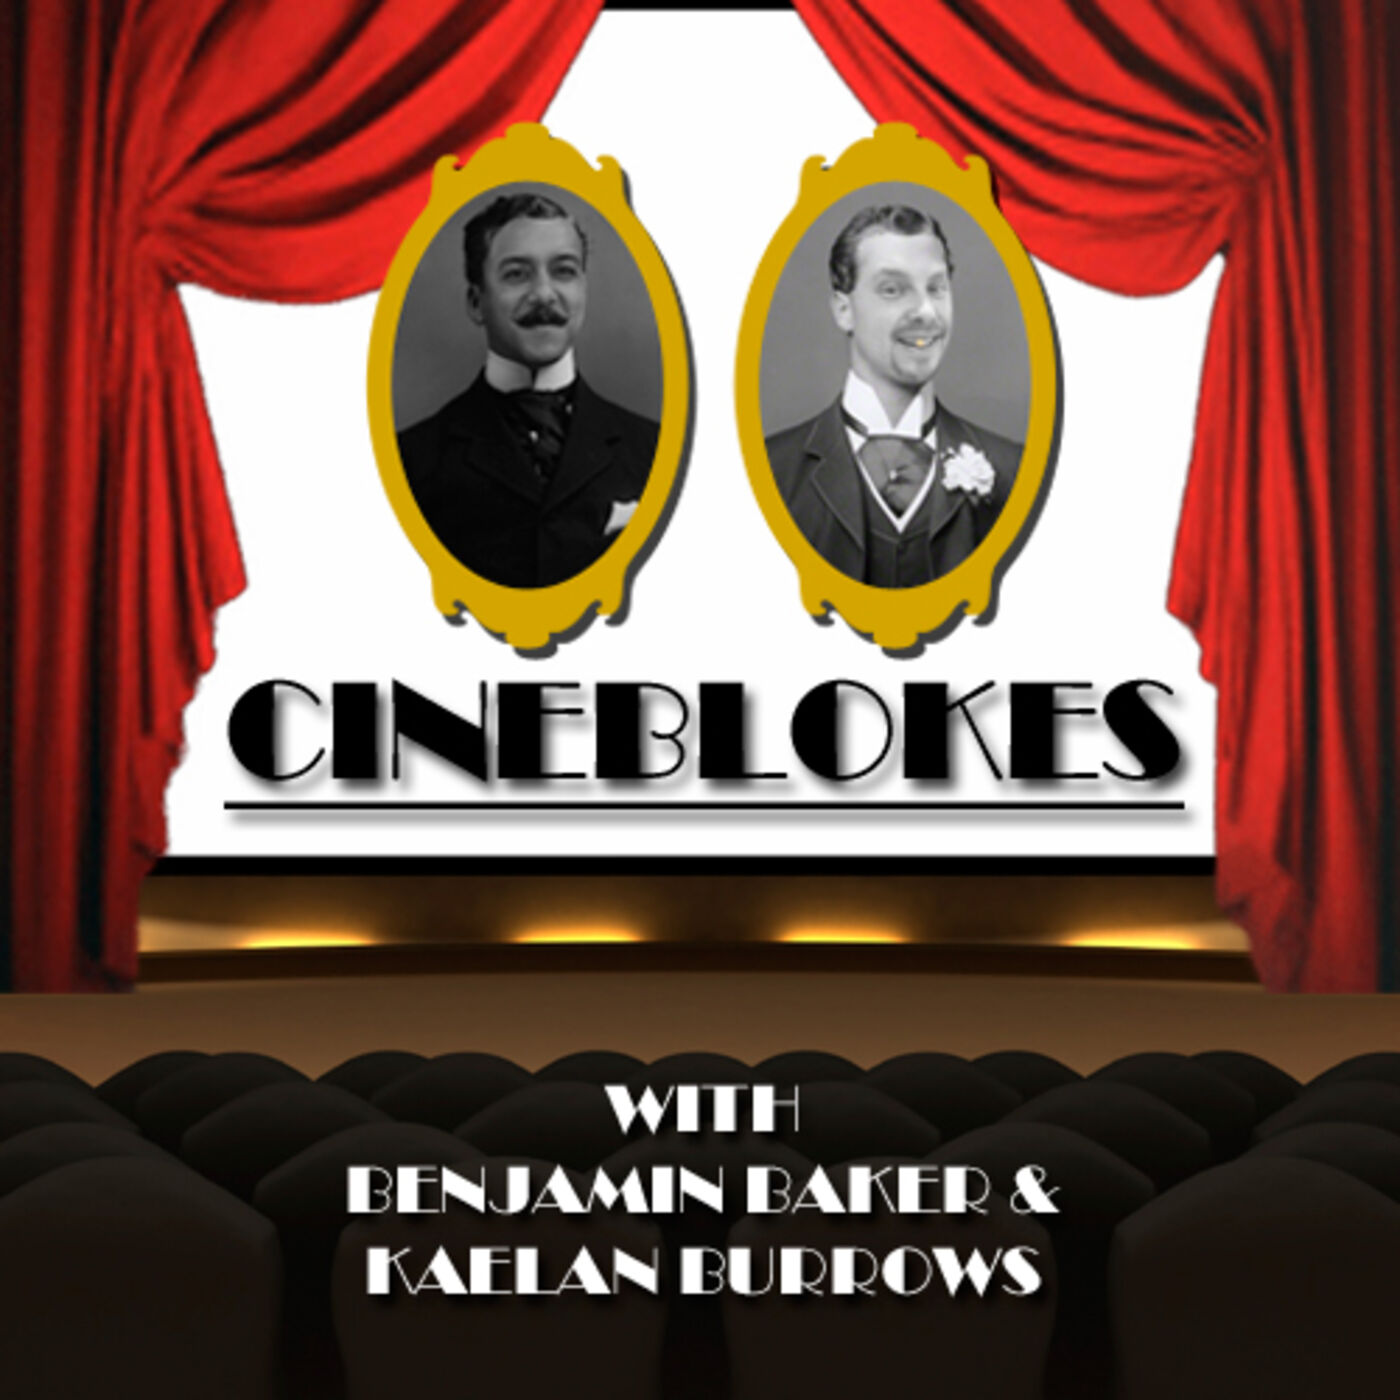 Cineblokes Episode 148 - Shang Chi and the Legend of the Ten Rings